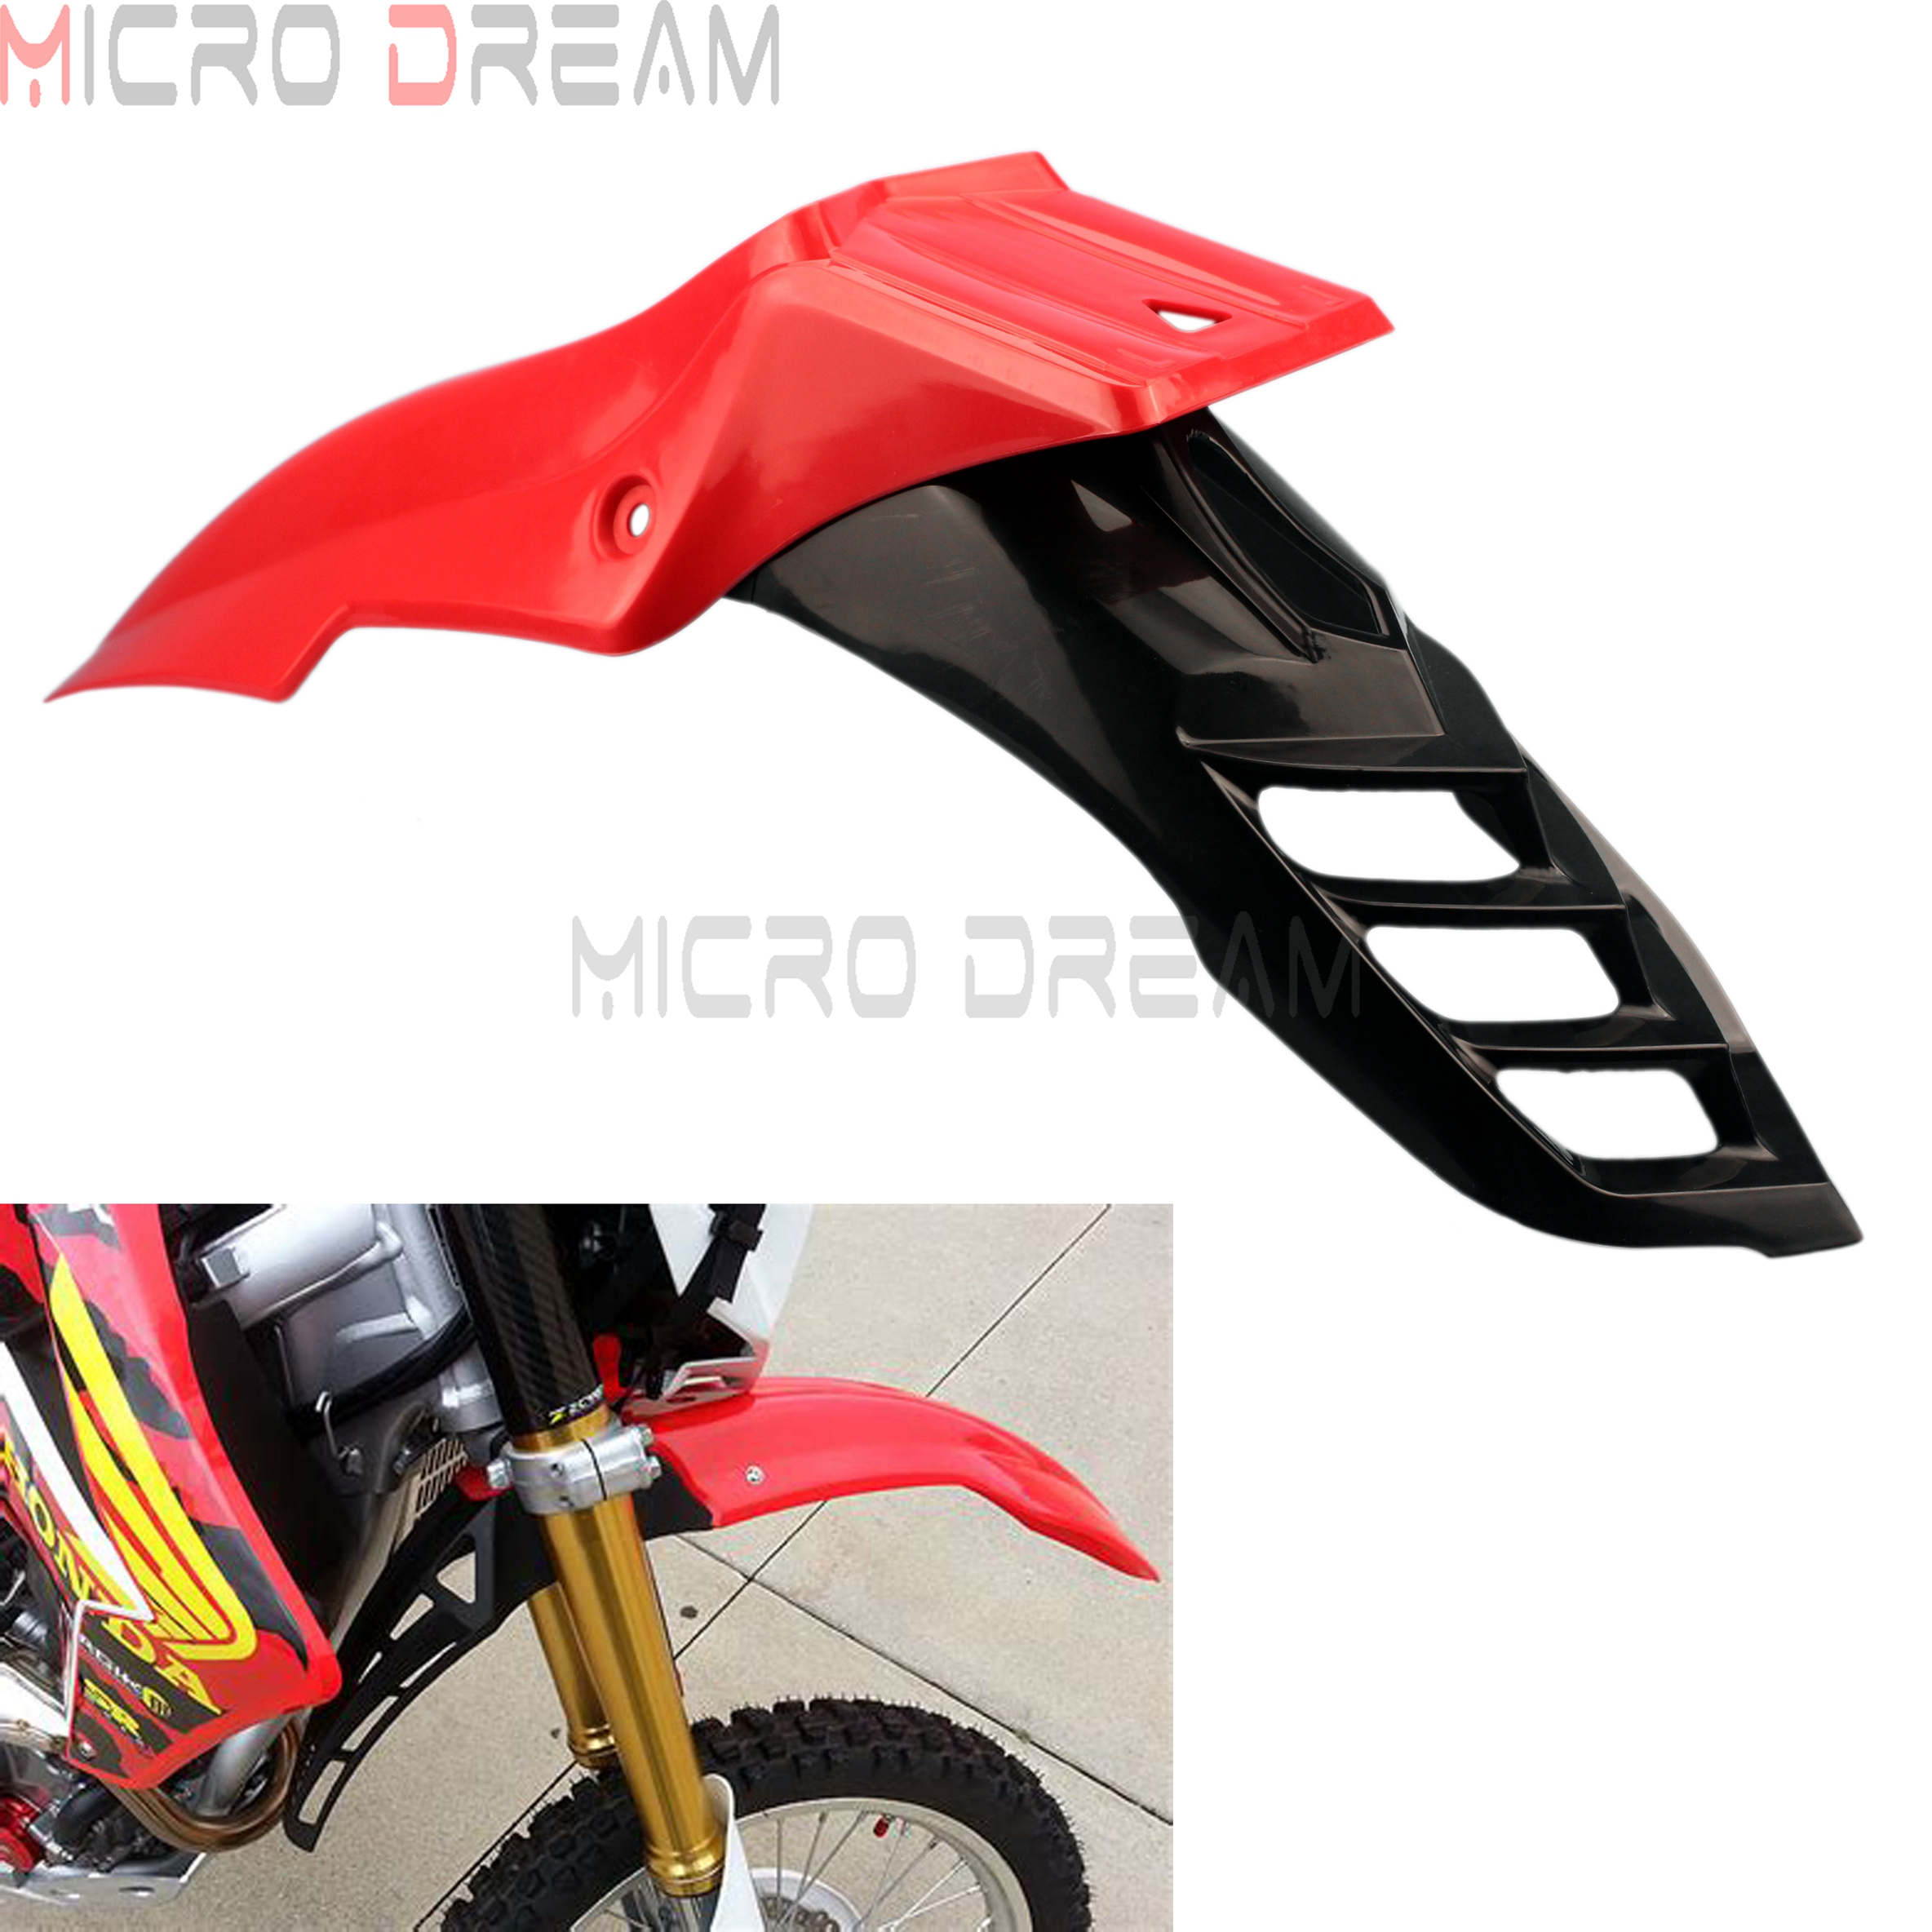 High Quality Red Motorcycle Cover For Honda CRF250R Dirt Bike